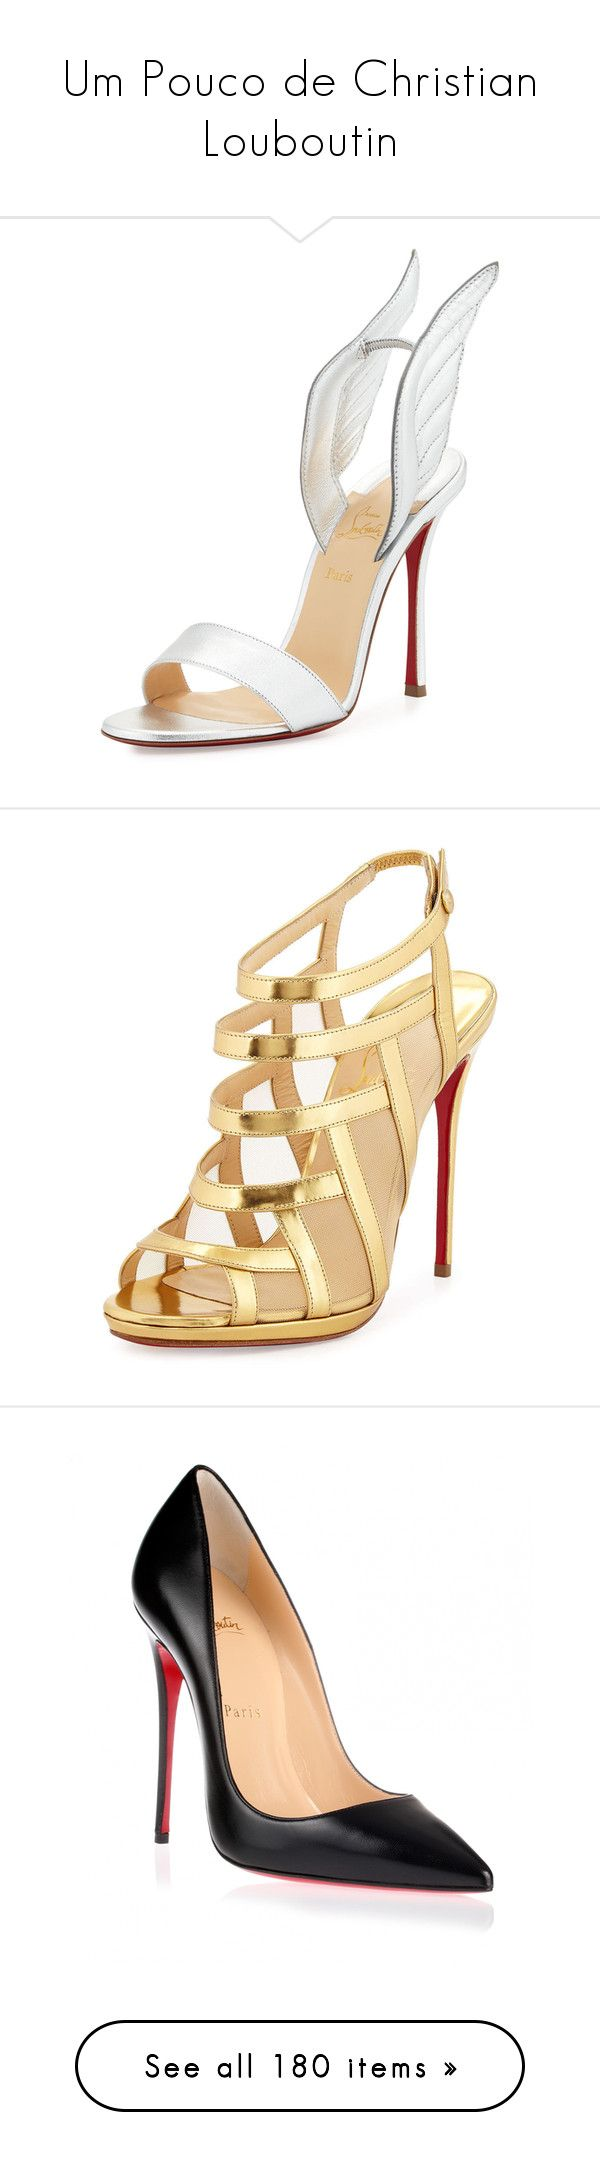 """""""Um Pouco de Christian Louboutin"""" by liasalvatore ❤ liked on Polyvore featuring shoes, sandals, heels, christian louboutin, silver, strappy sandals, leather slip on sandals, winged sandals, leather strap sandals and heeled sandals"""